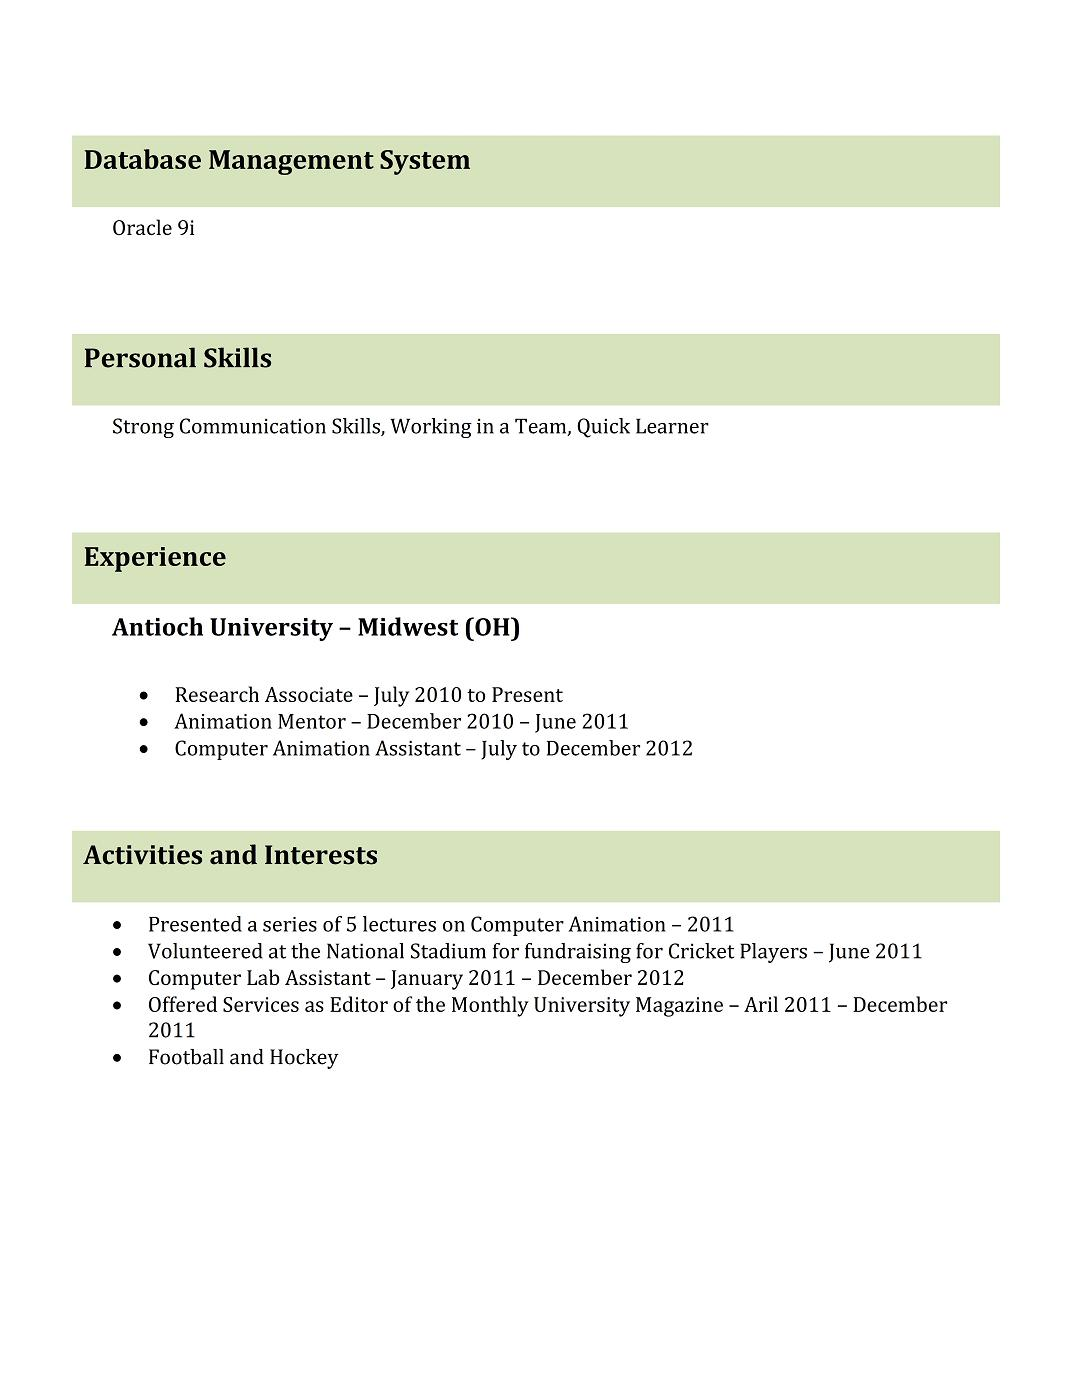 Wonderful 1 Page Resume Format Free Download Tiny 1 Year Experience Resume Format For Java Developer Flat 1 Year Experience Resume Format For Net Developer 15 Year Old Funny Resume Youthful 1st Year Teacher Resume Template Yellow2 Page Resume Layout 9 Best Different Types Of Resumes Formats Sample | Best ..